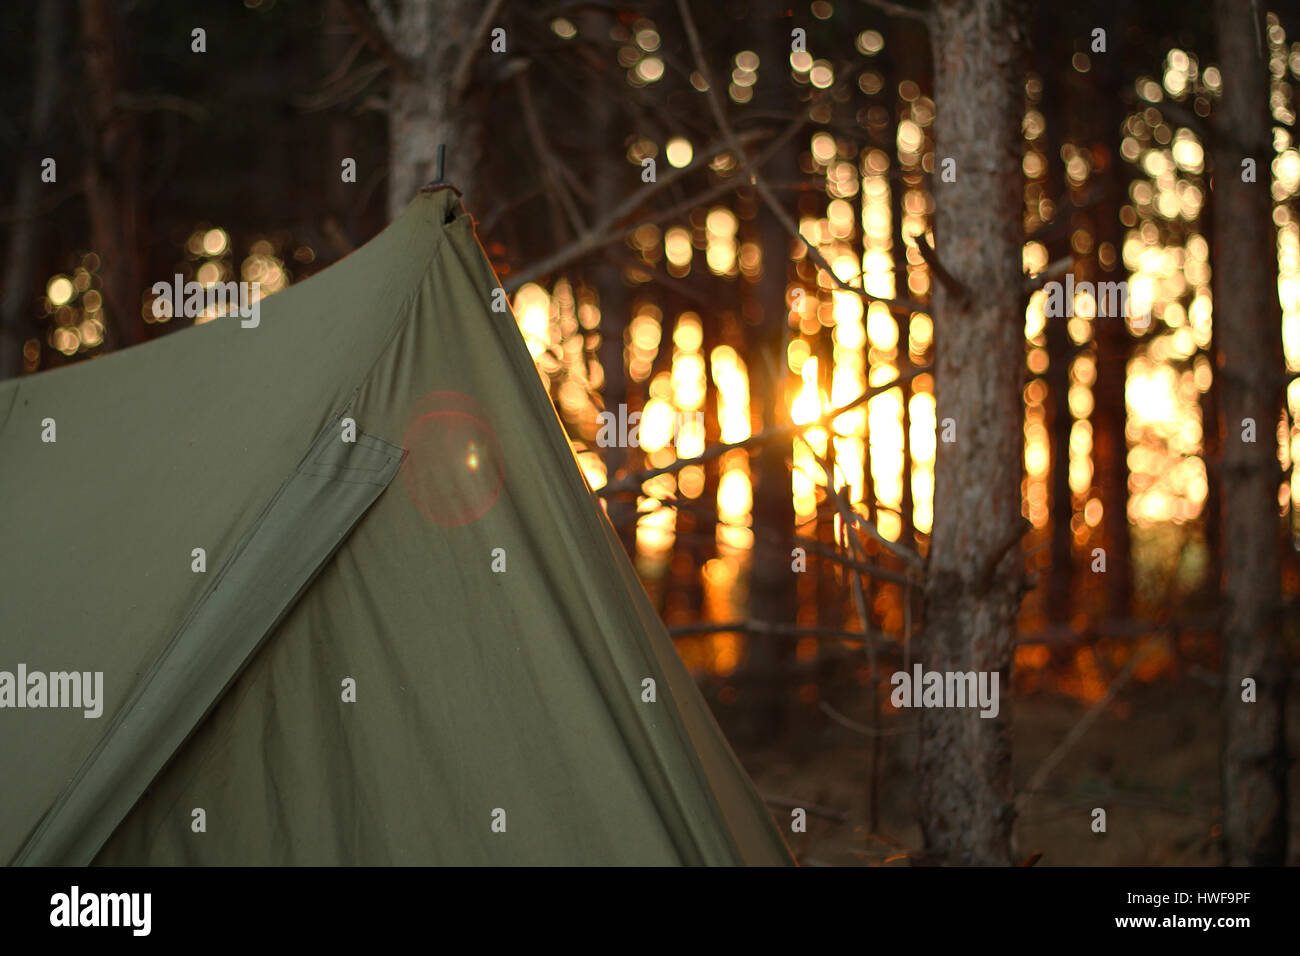 Camping tent in the forrest - Stock Image